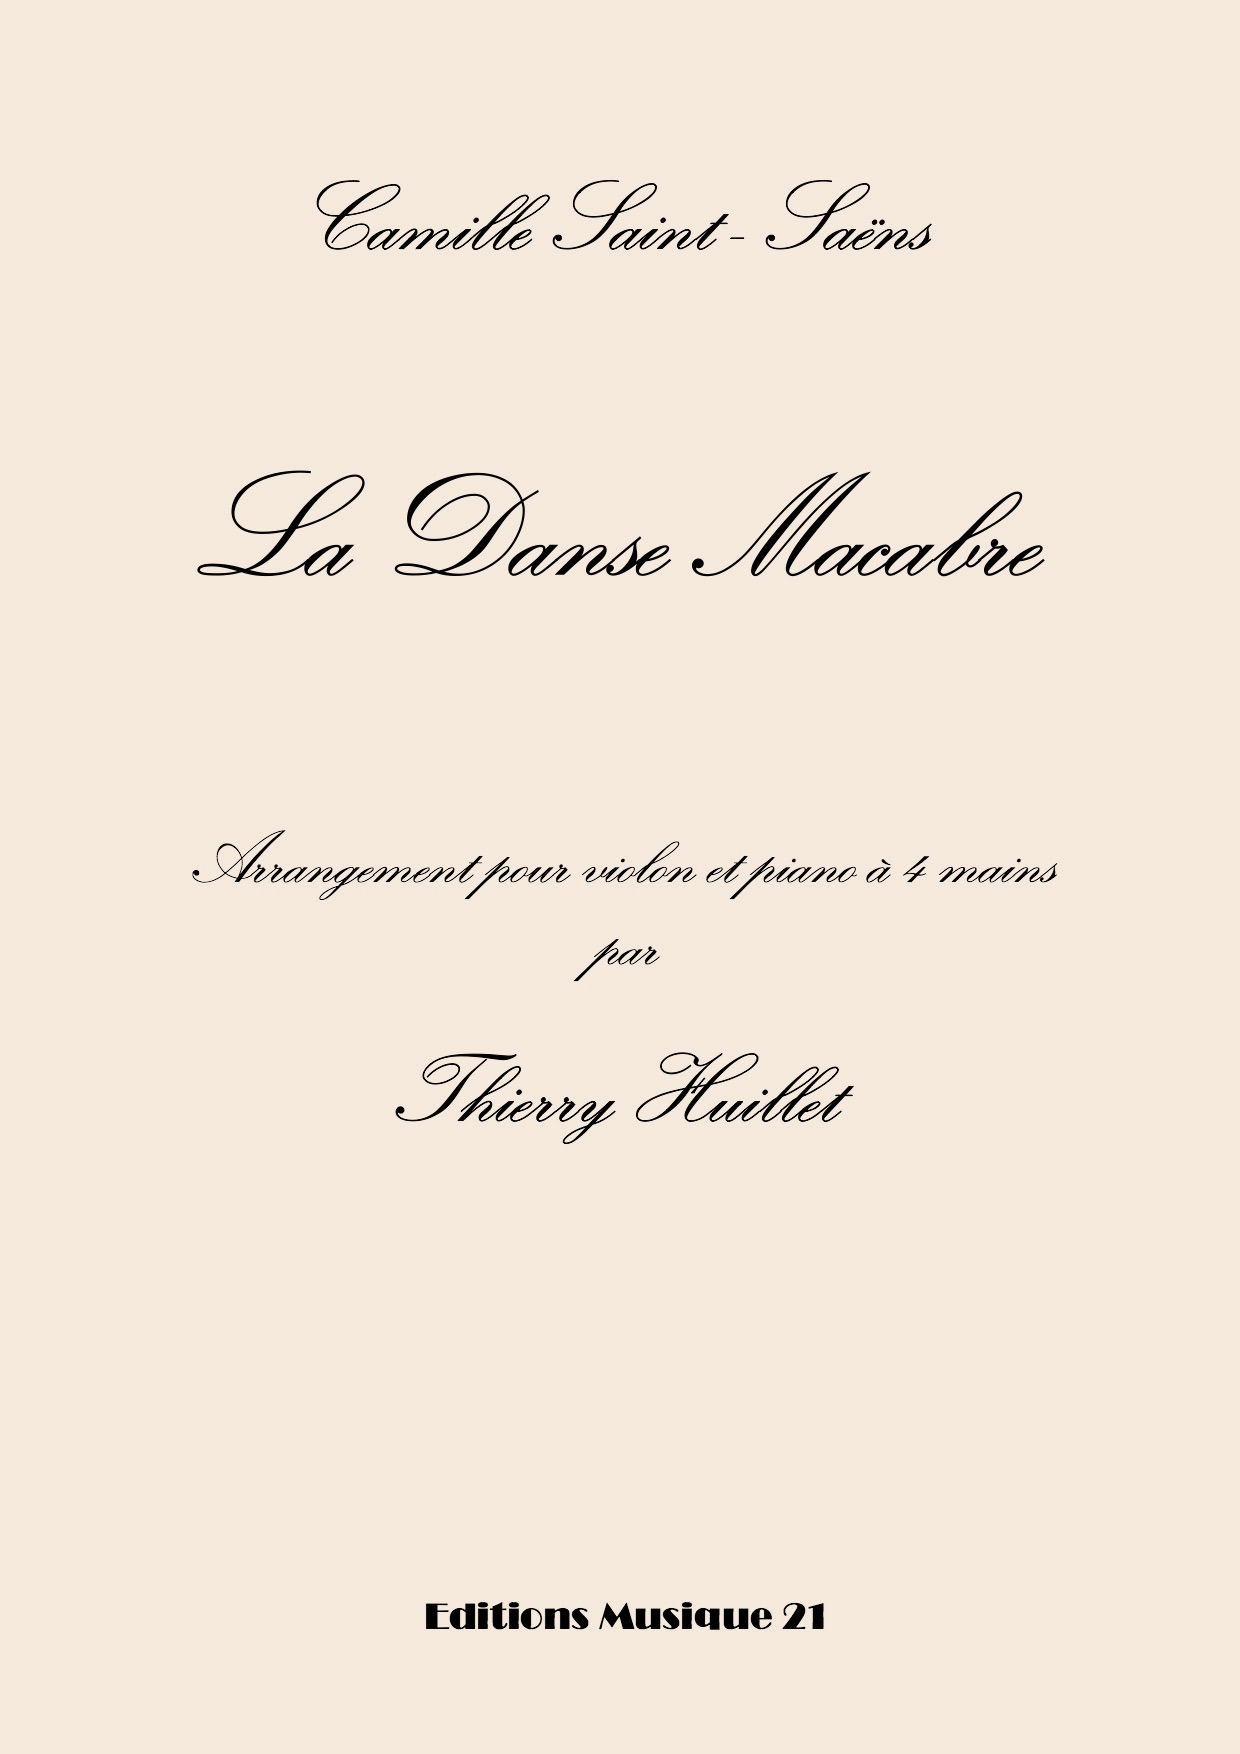 Camille SAINT-SAËNS – La Danse Macabre, Transcription For Violin And Piano 4 Hands By Thierry Huillet